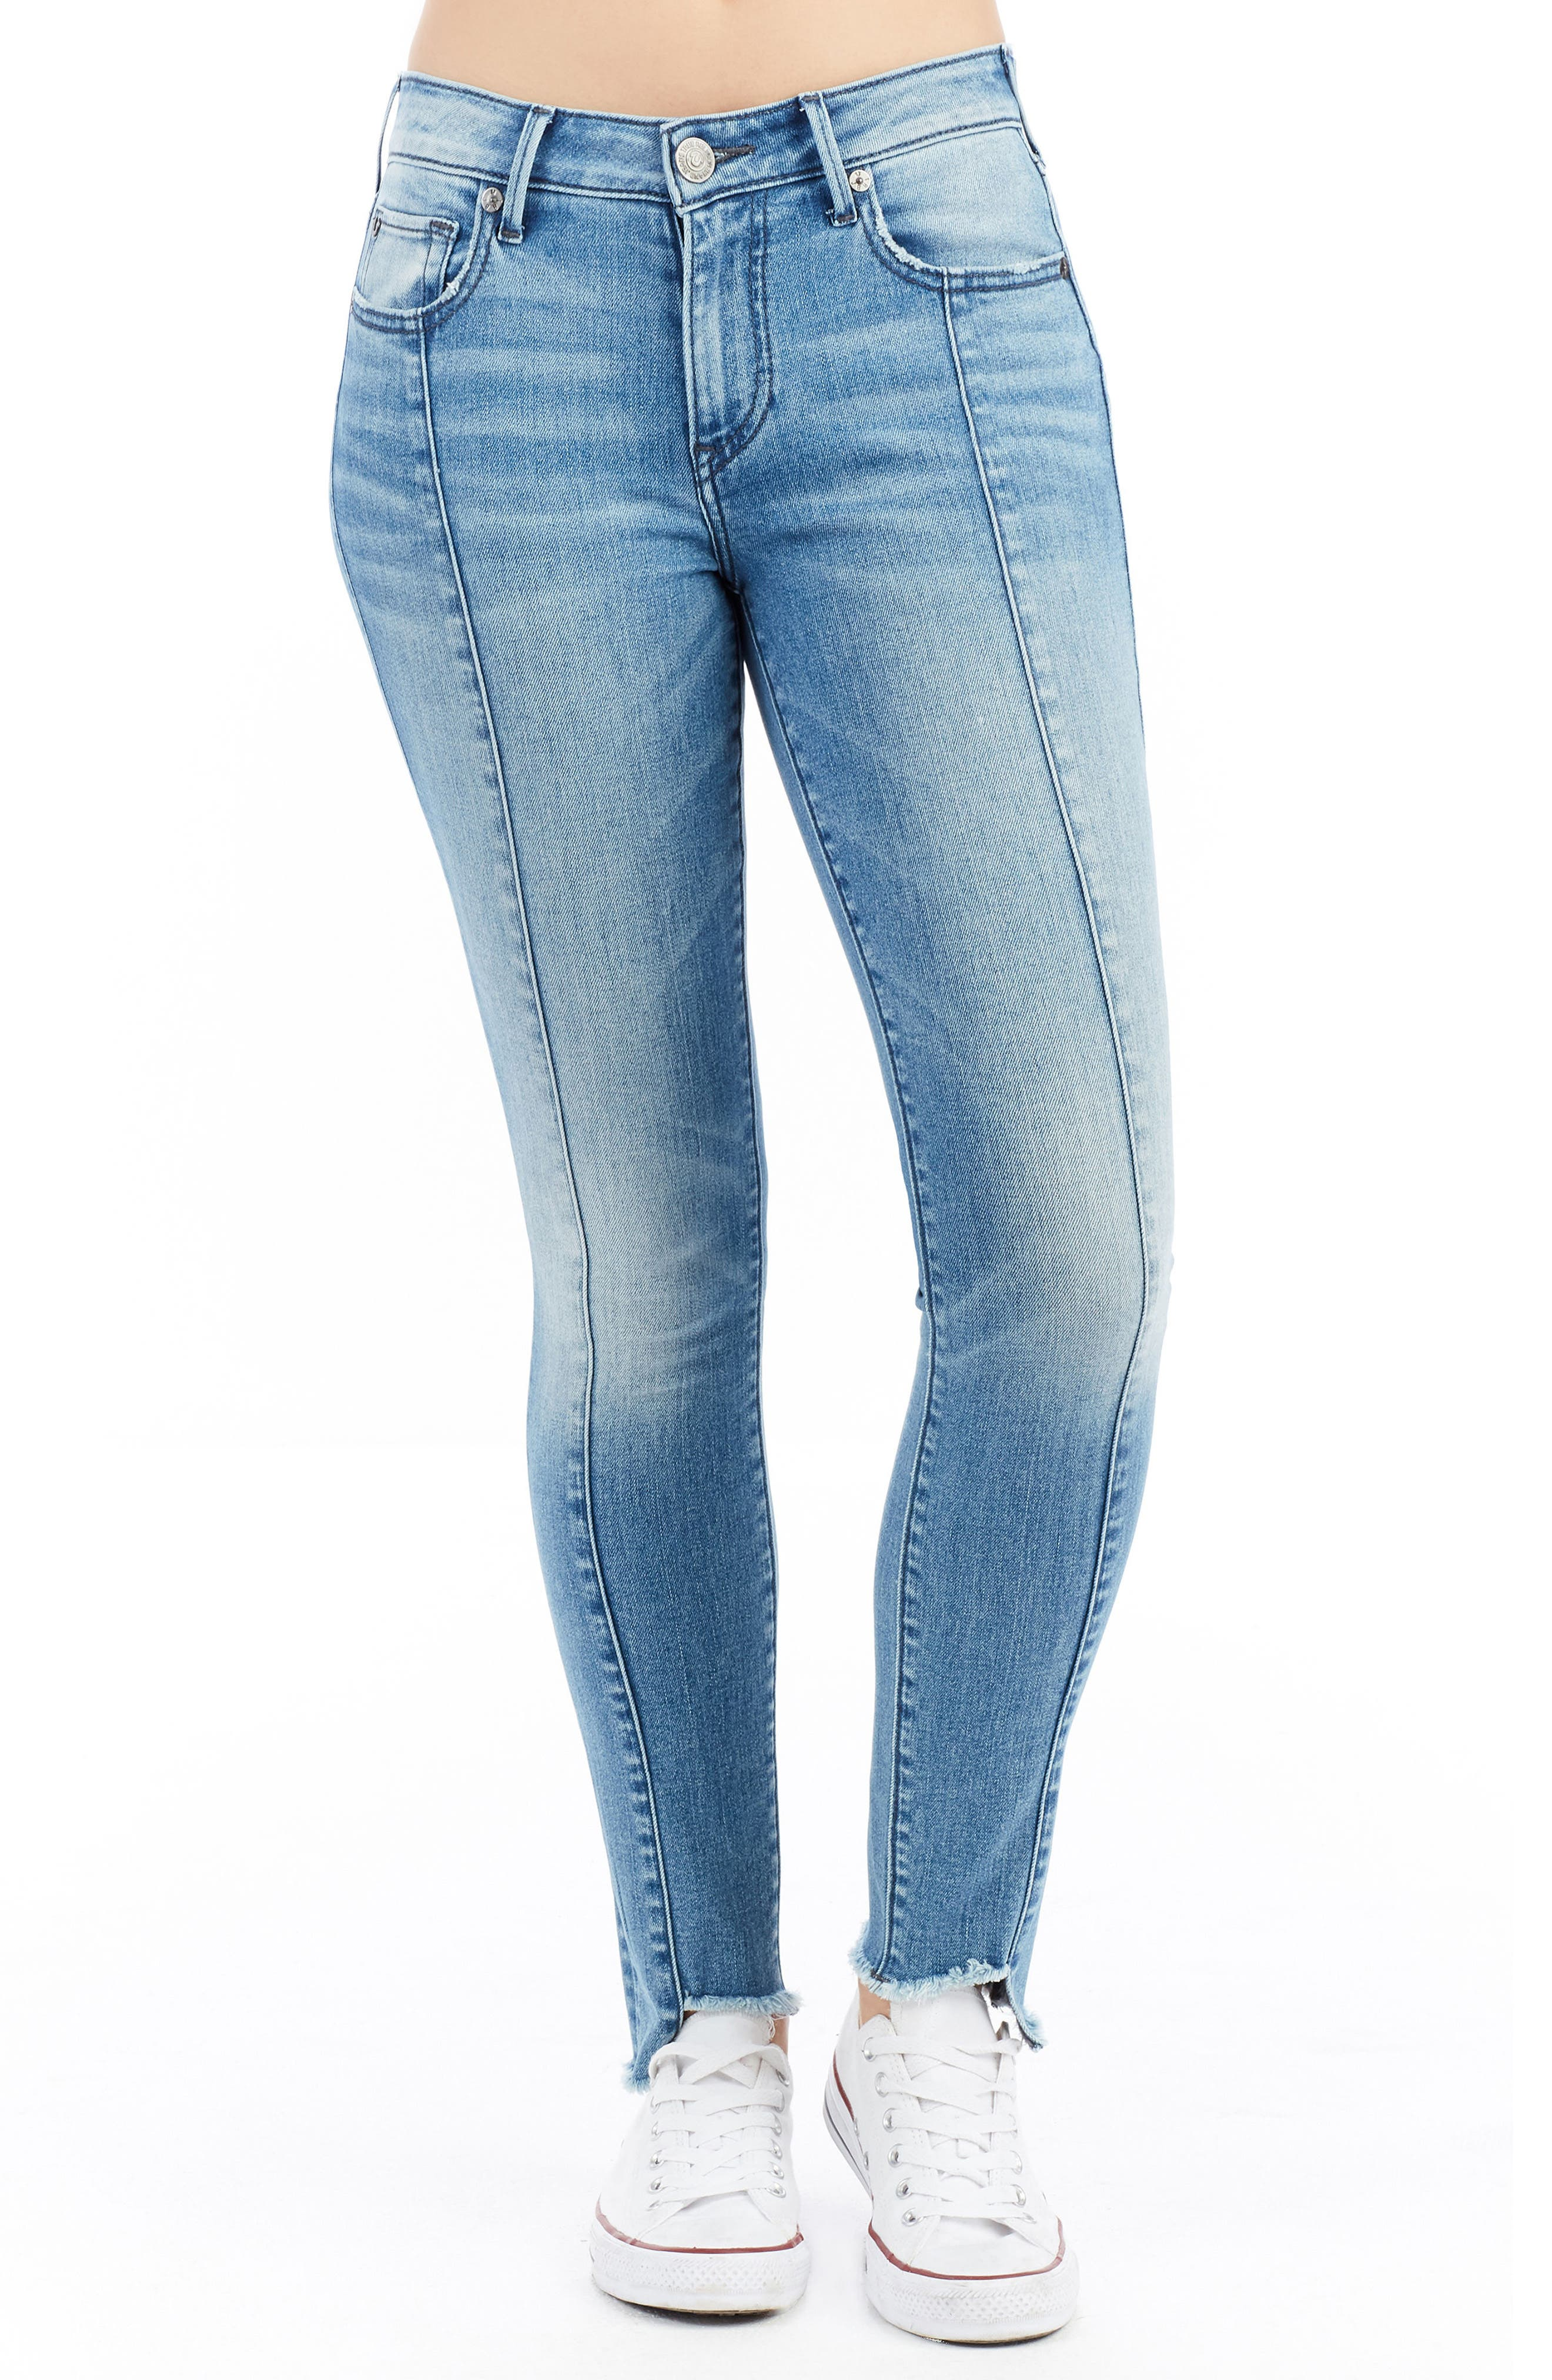 Jennie Curvy Ankle Skinny Jeans,                             Main thumbnail 1, color,                             401